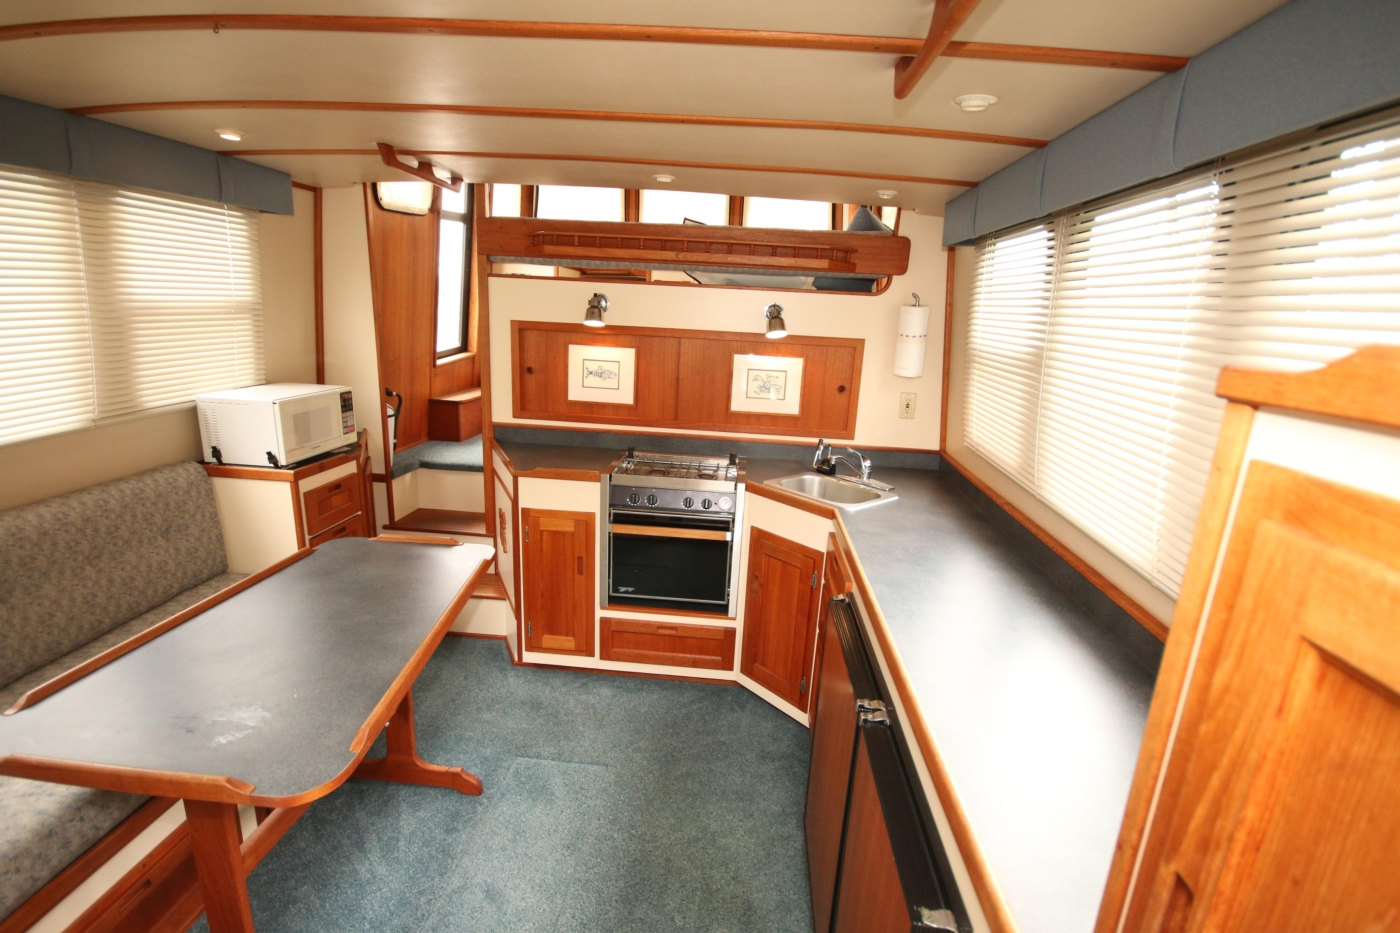 1999 Nordic Tugs 32, View Forward into the Salon /Galley